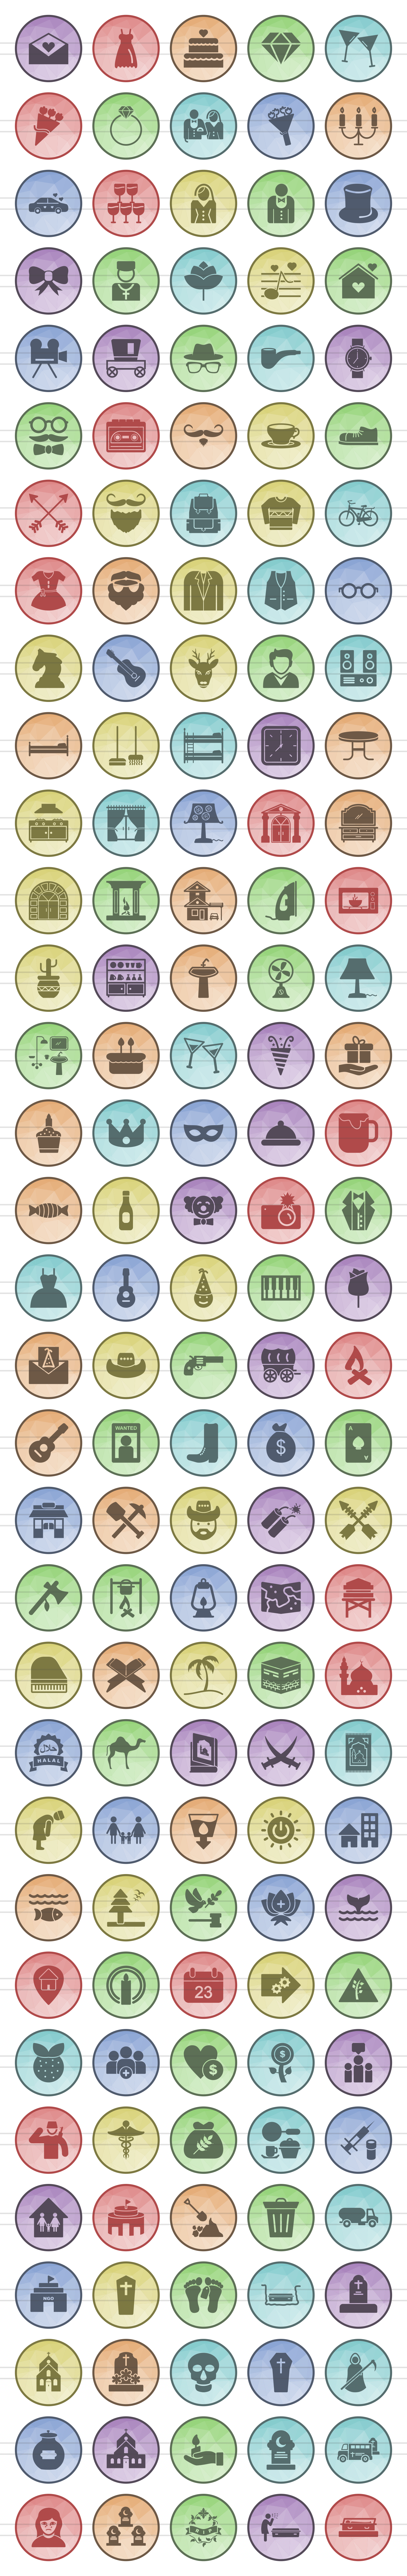 166 Lifestyle Filled Low Poly Icons example image 2